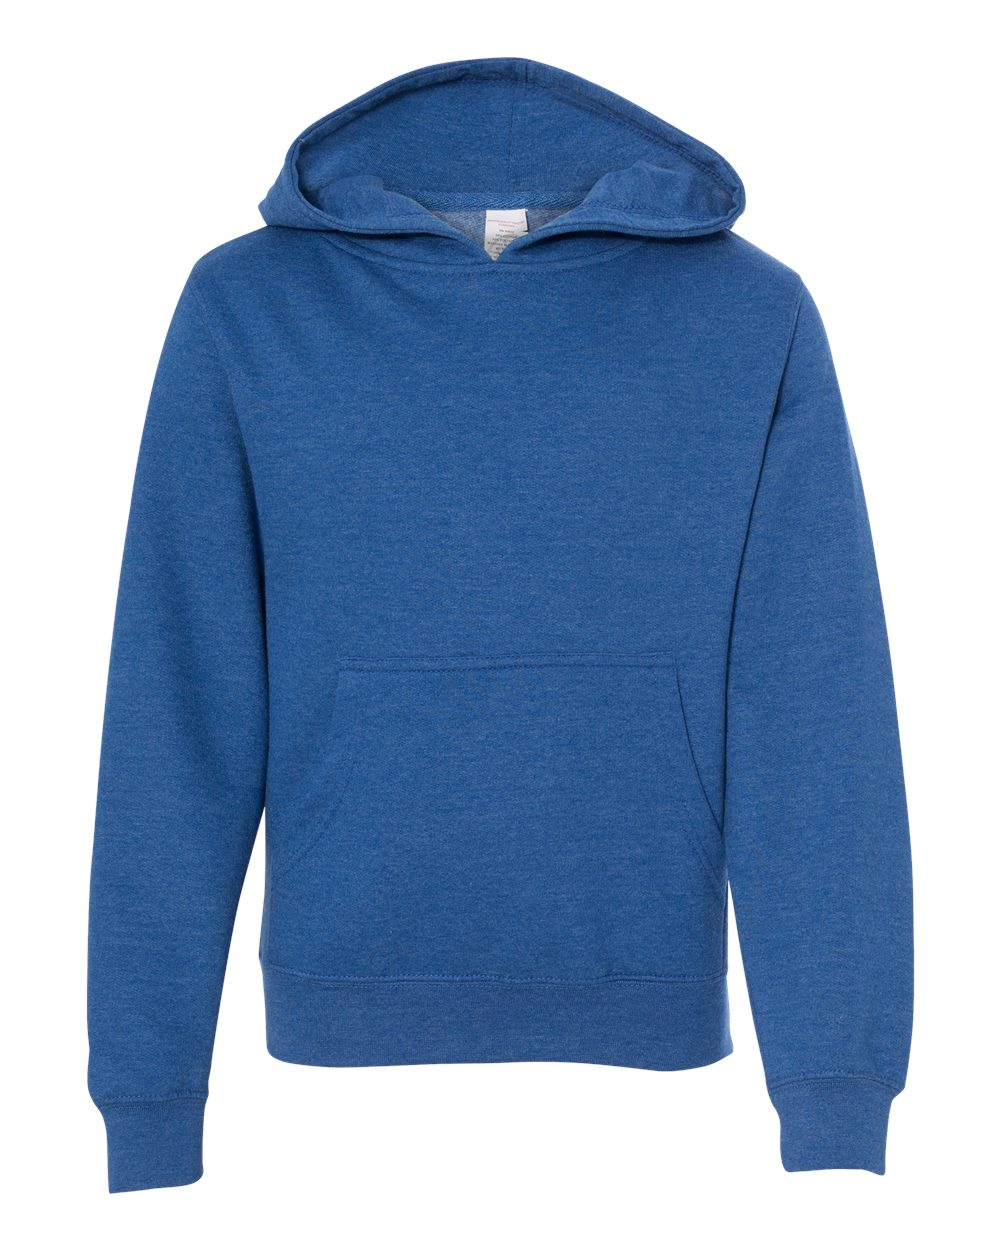 Picture of Independent Youth Midweight Hooded Sweatshirt